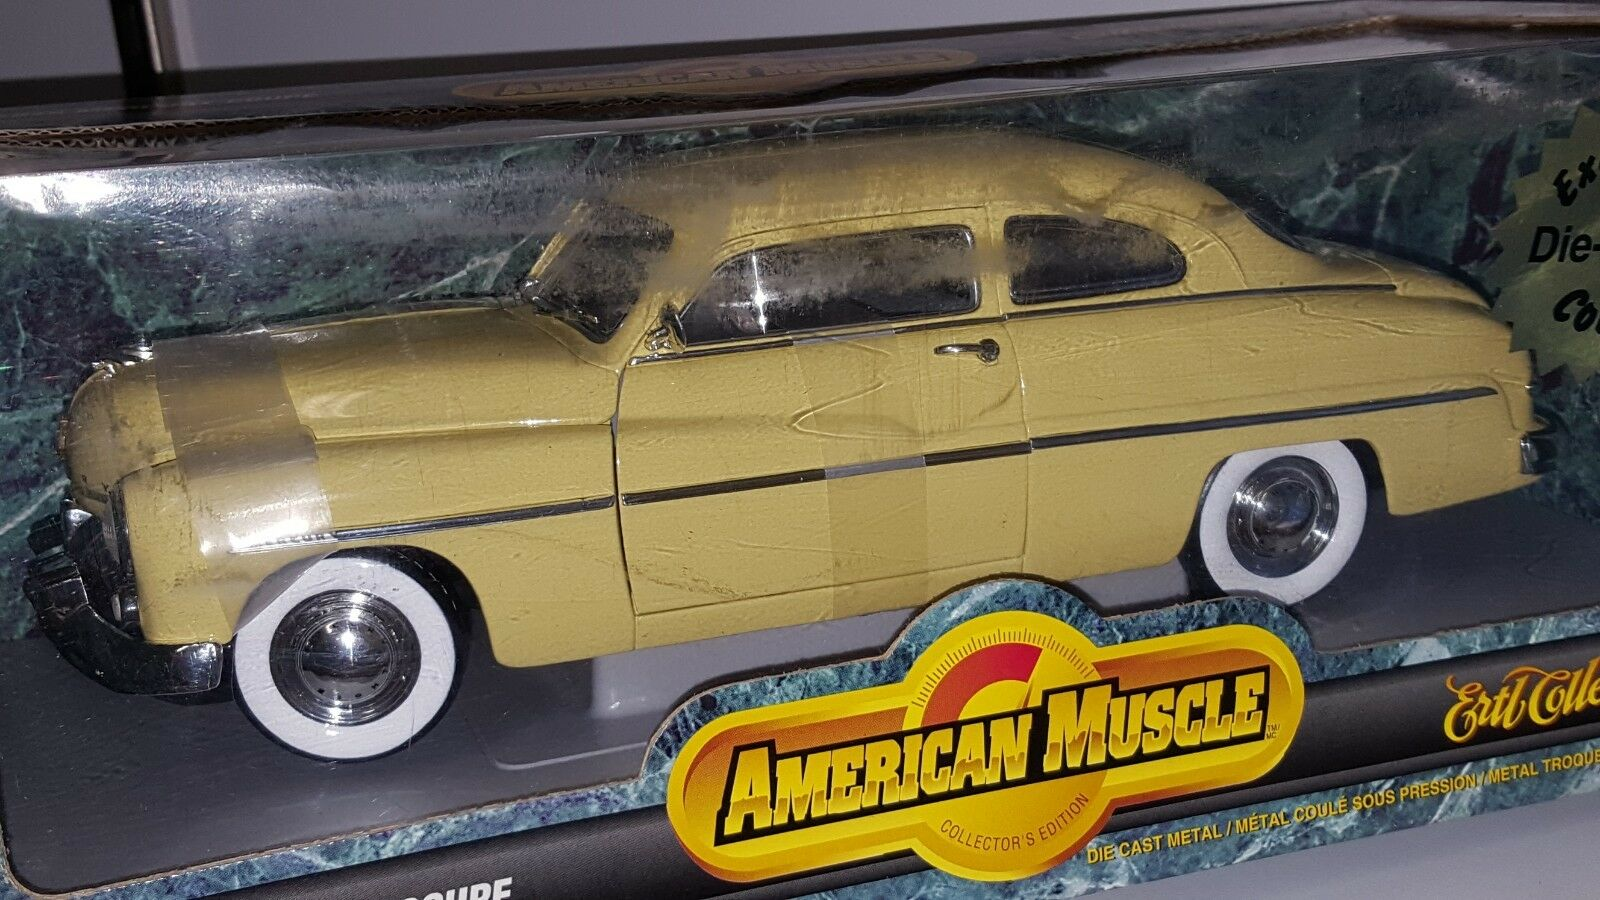 1/18 ERTL AMERICAN MUSCLE 1949 MERCURY COUPE LIGHT giallo gd